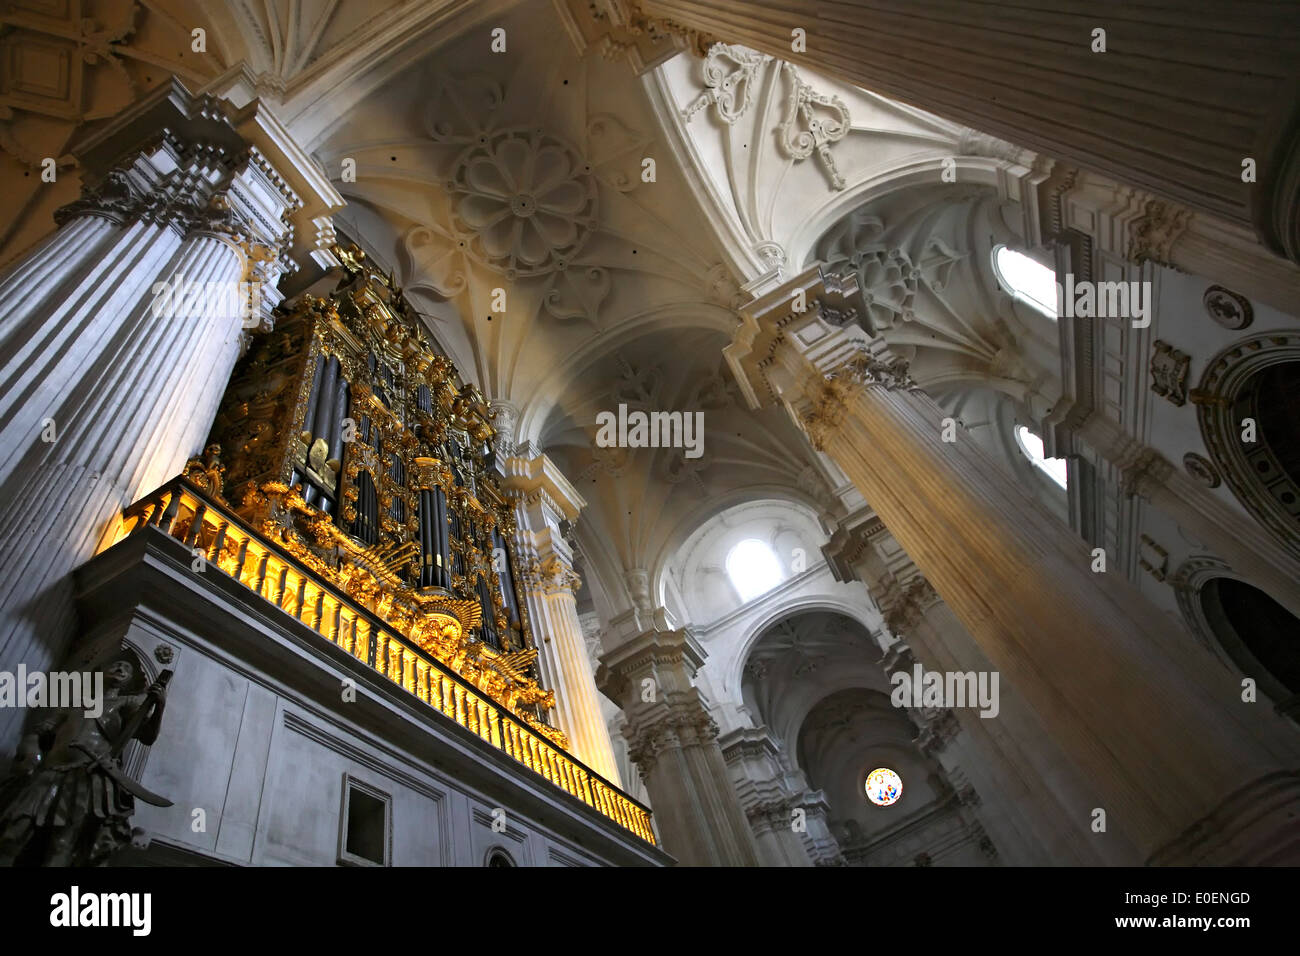 Beam of light, interior of Granada Cathedral (Cathedral of the Incarnation), Granada, Spain - Stock Image